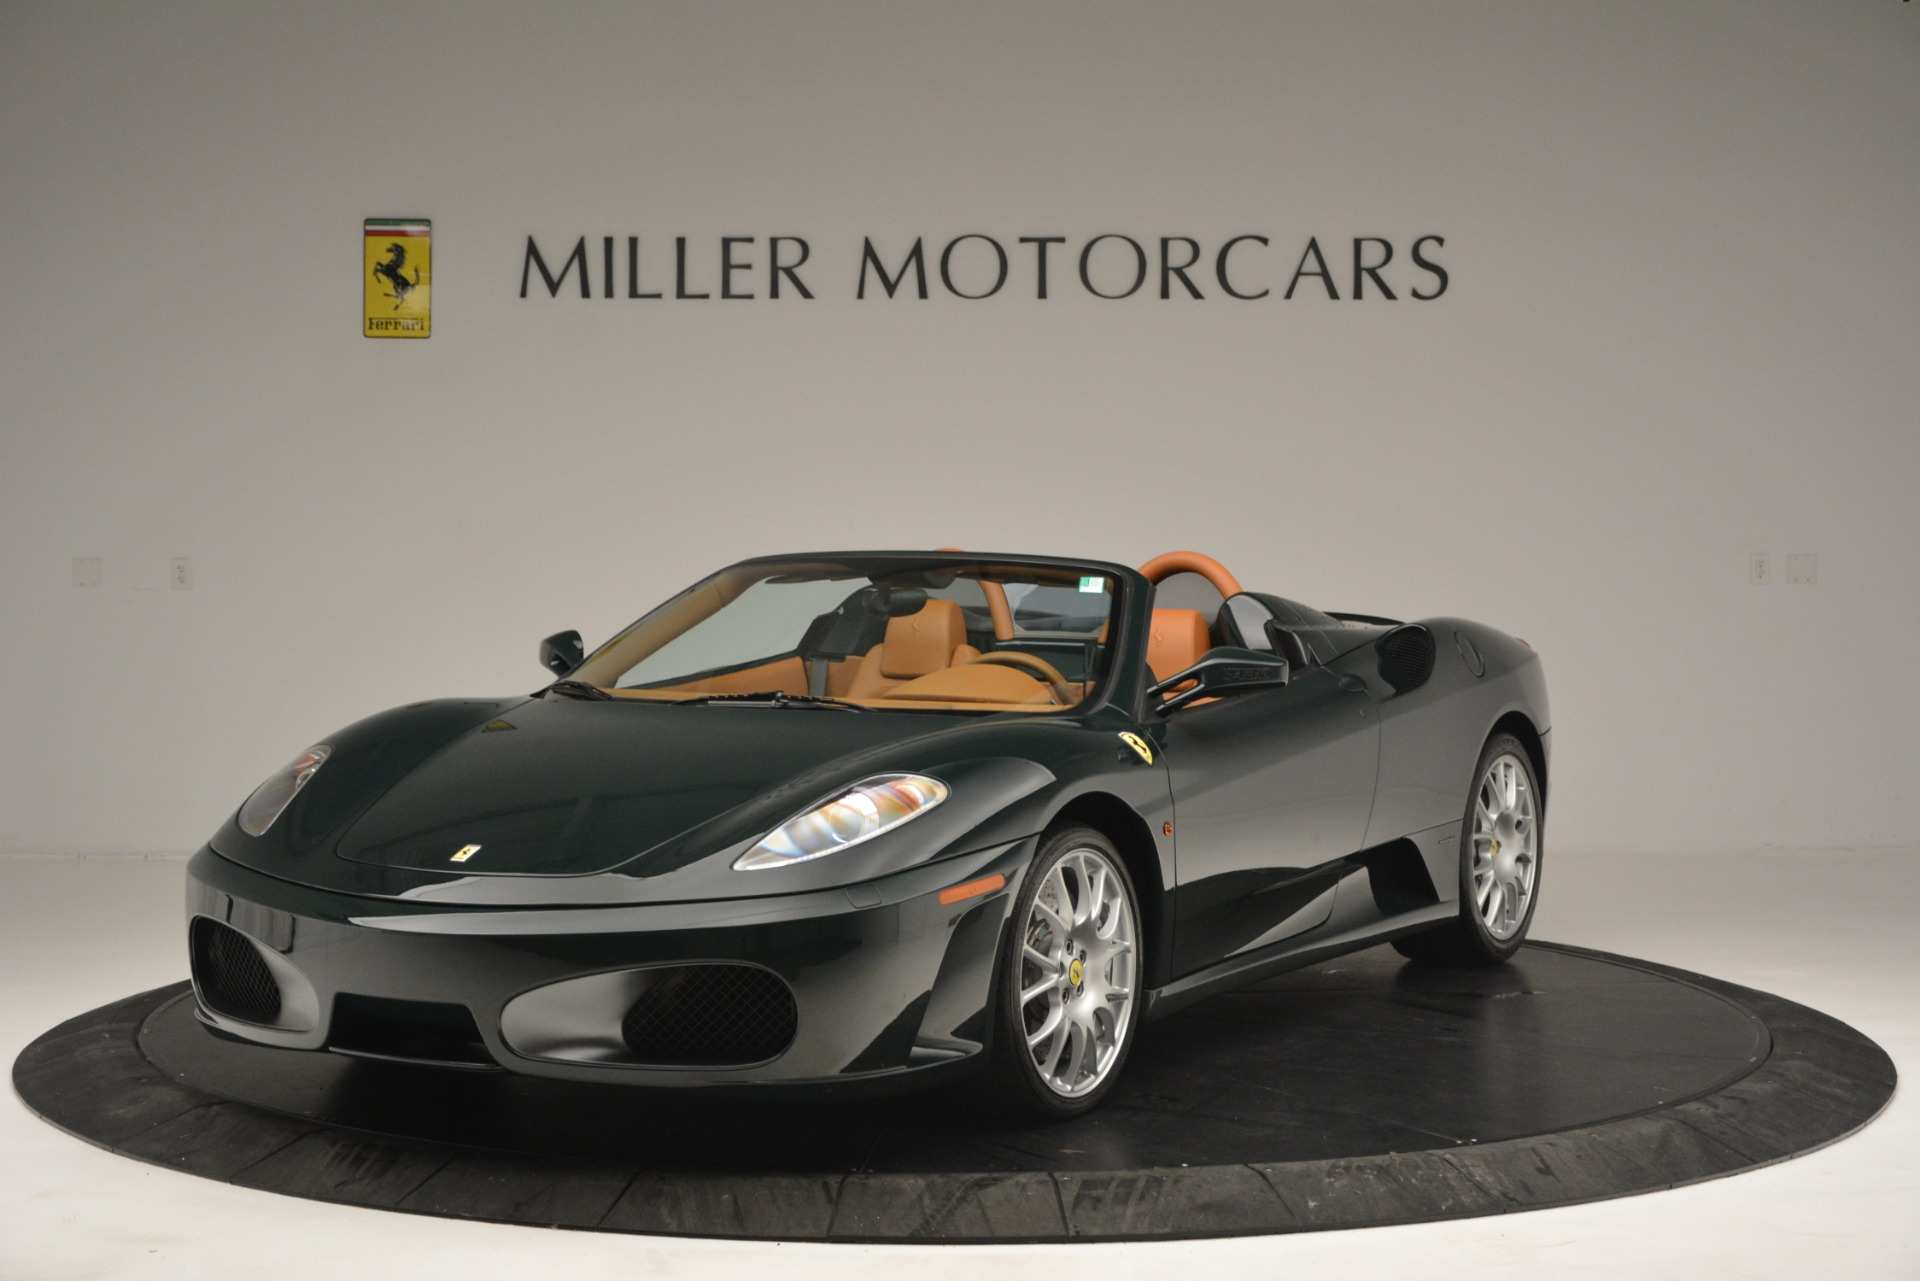 Pre Owned 2005 Ferrari F430 Spider For Sale Miller Motorcars Stock 4522